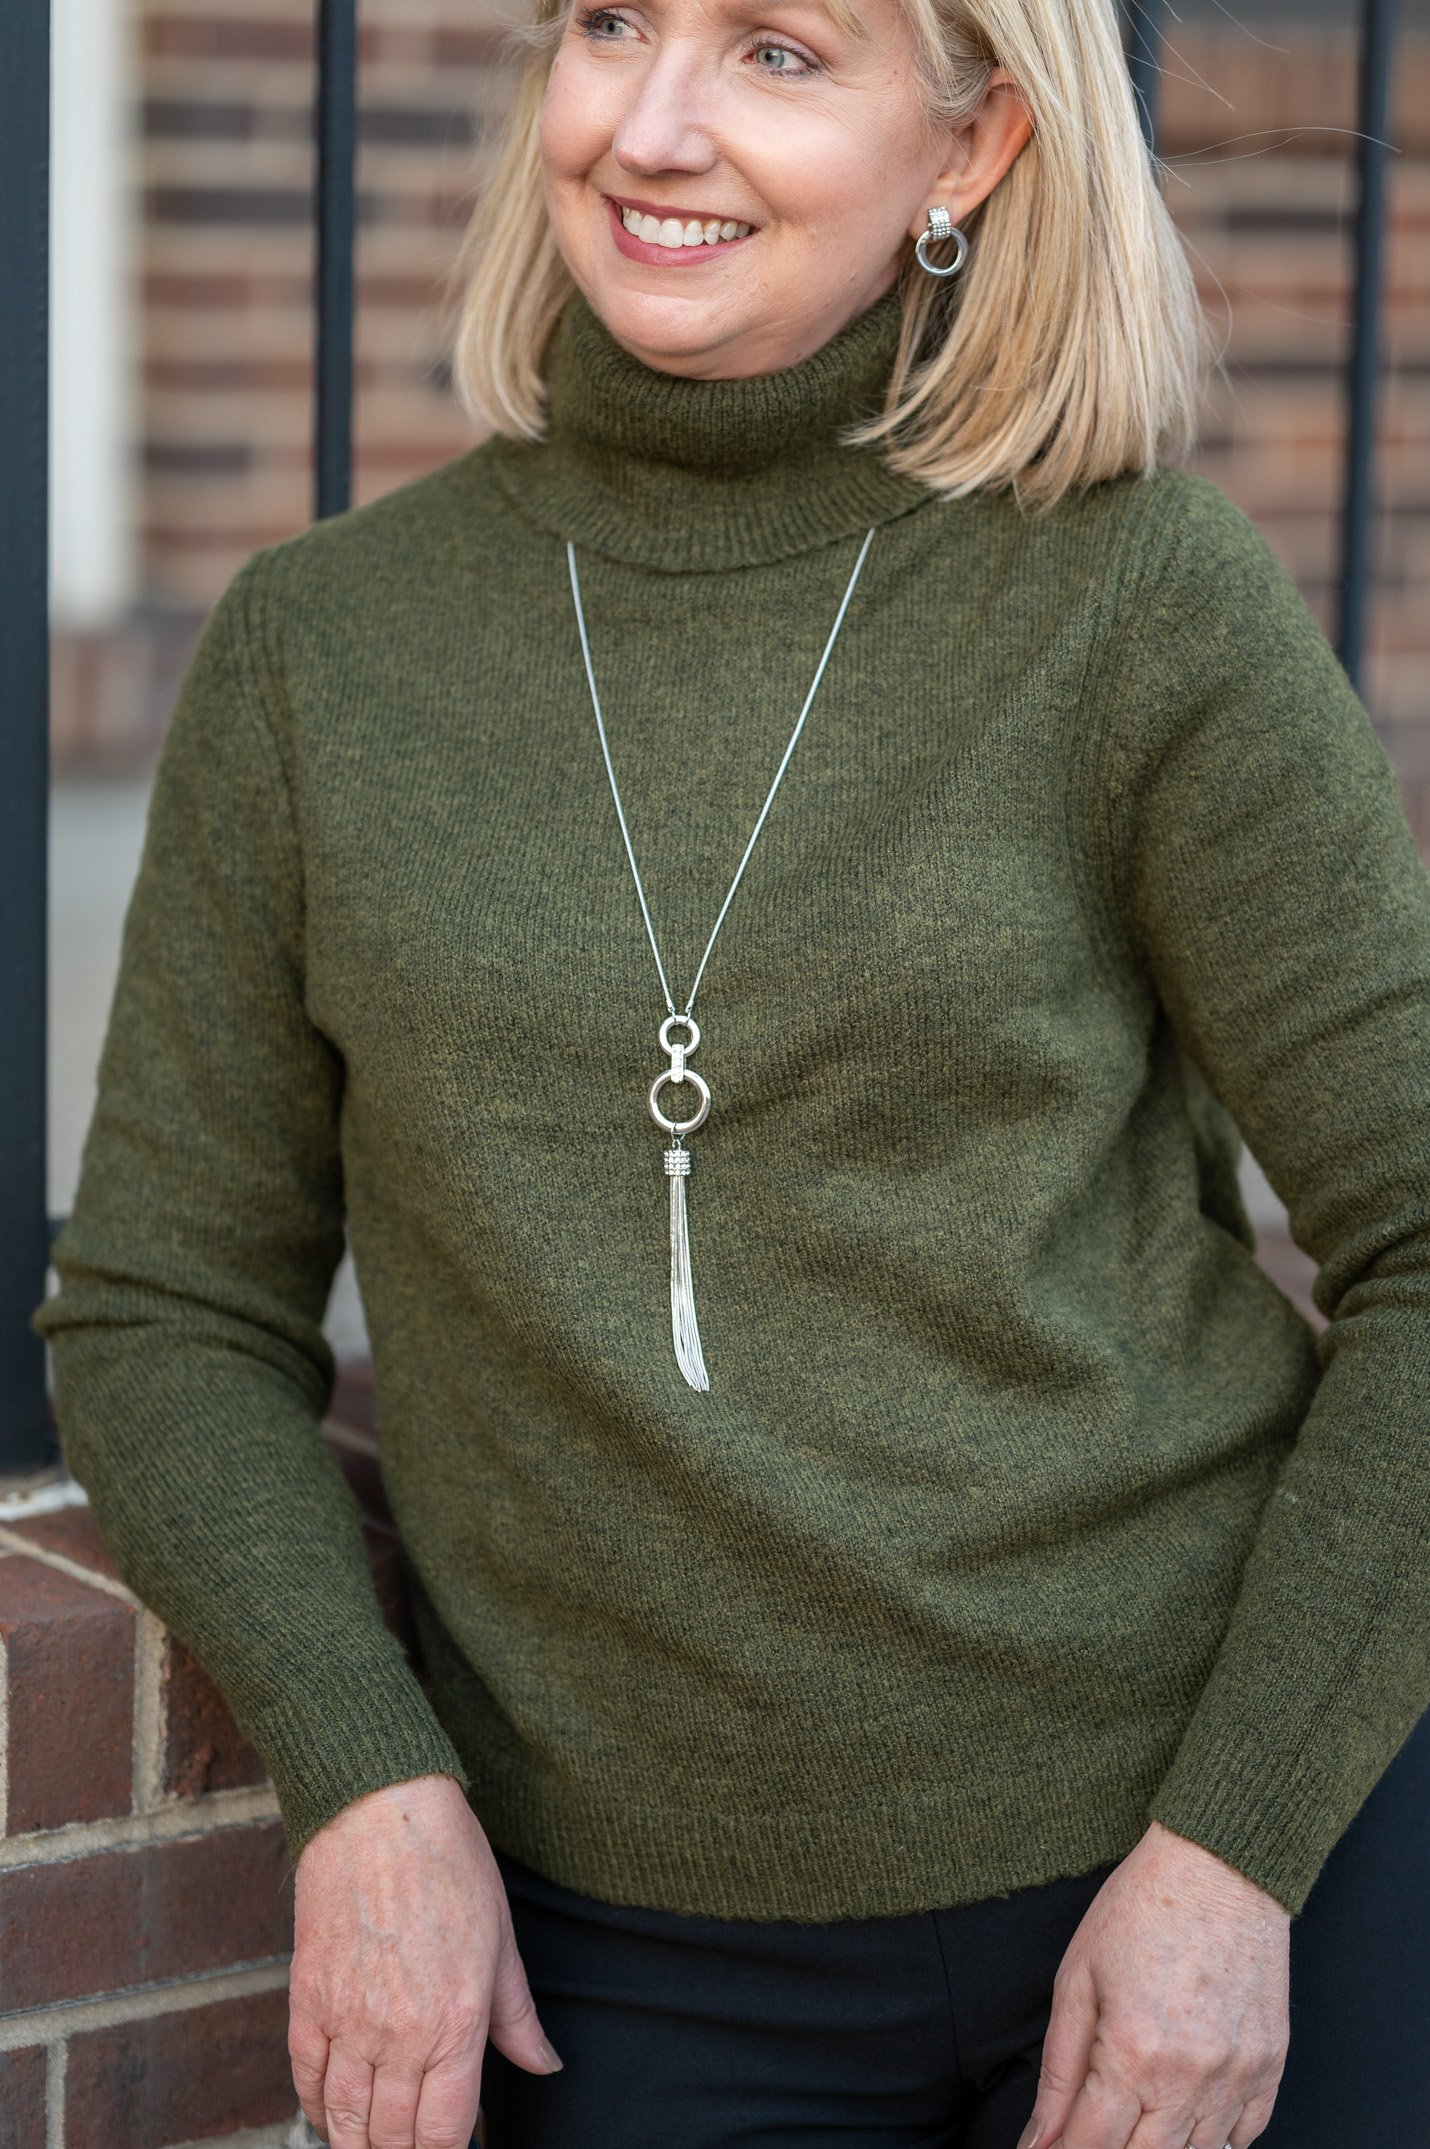 Green Sweater and Jewelry